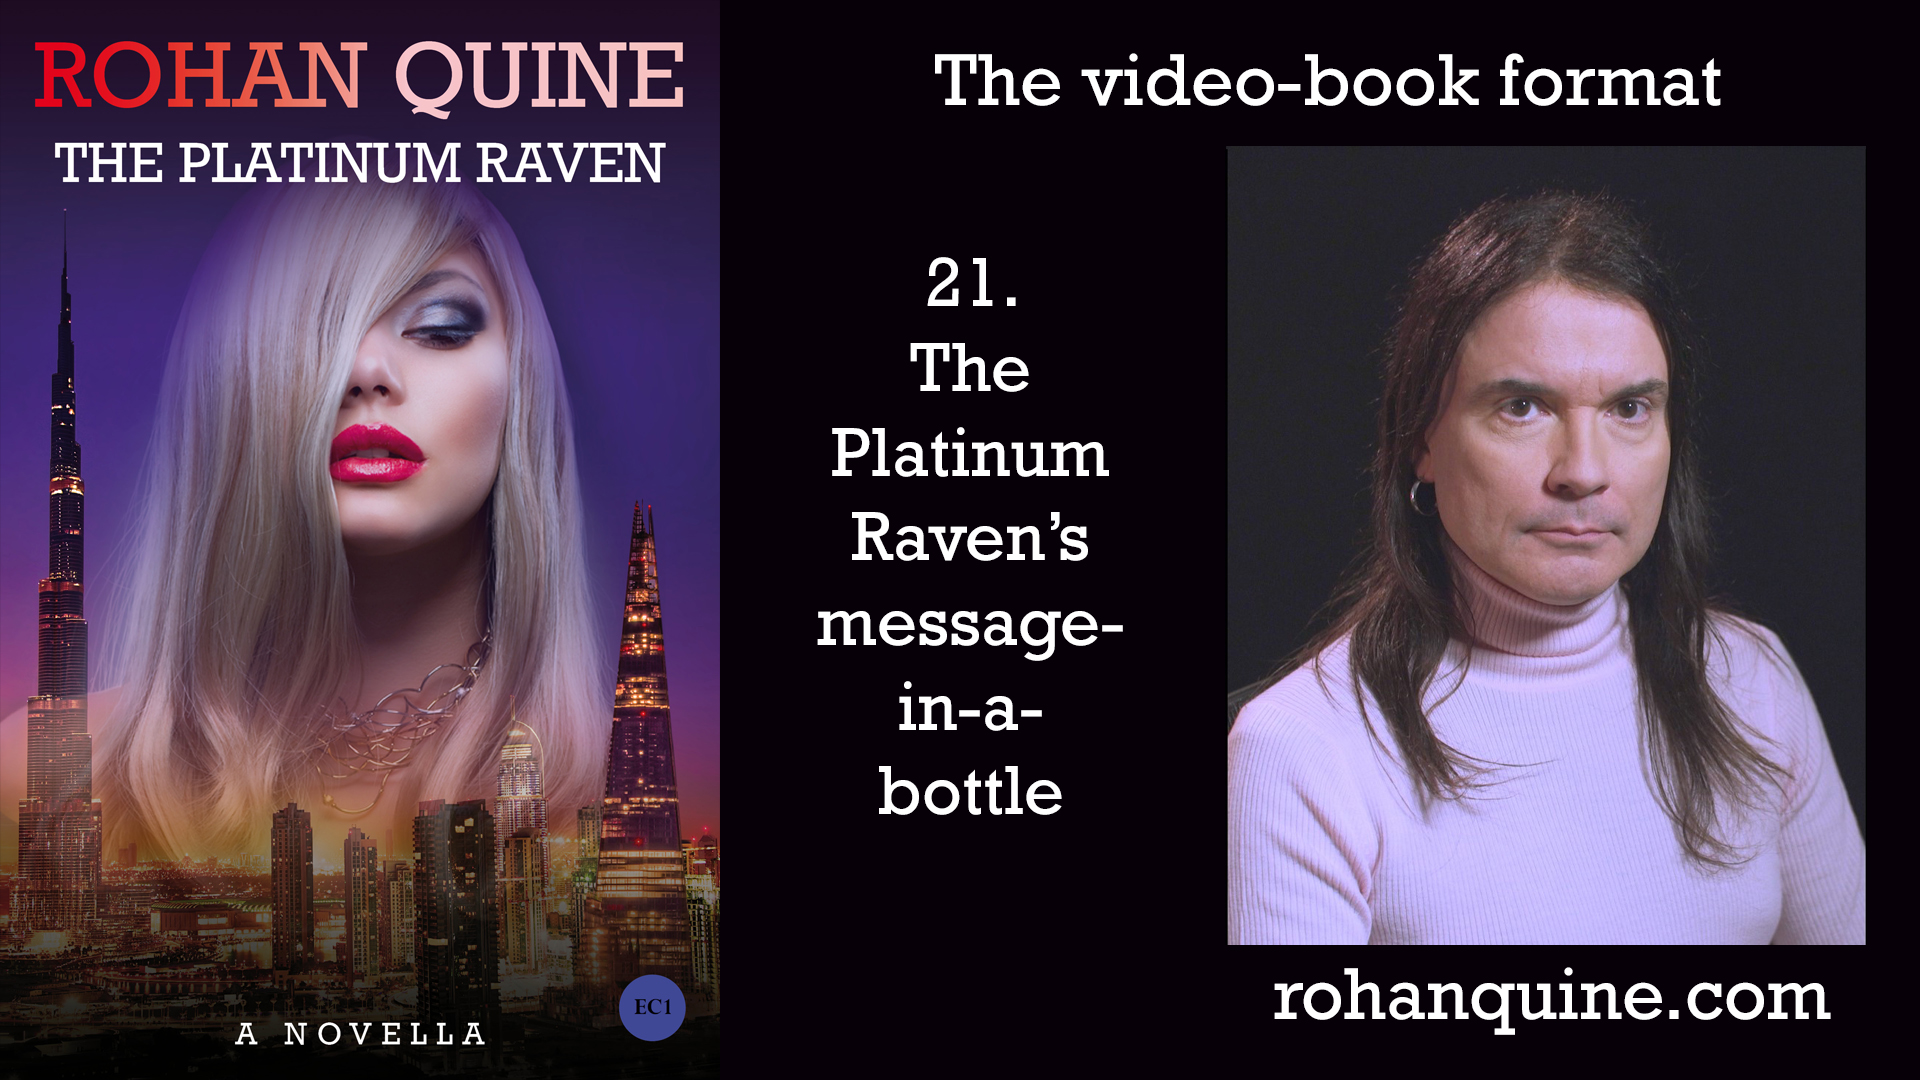 THE PLATINUM RAVEN by Rohan Quine - video-book format - chapter 21